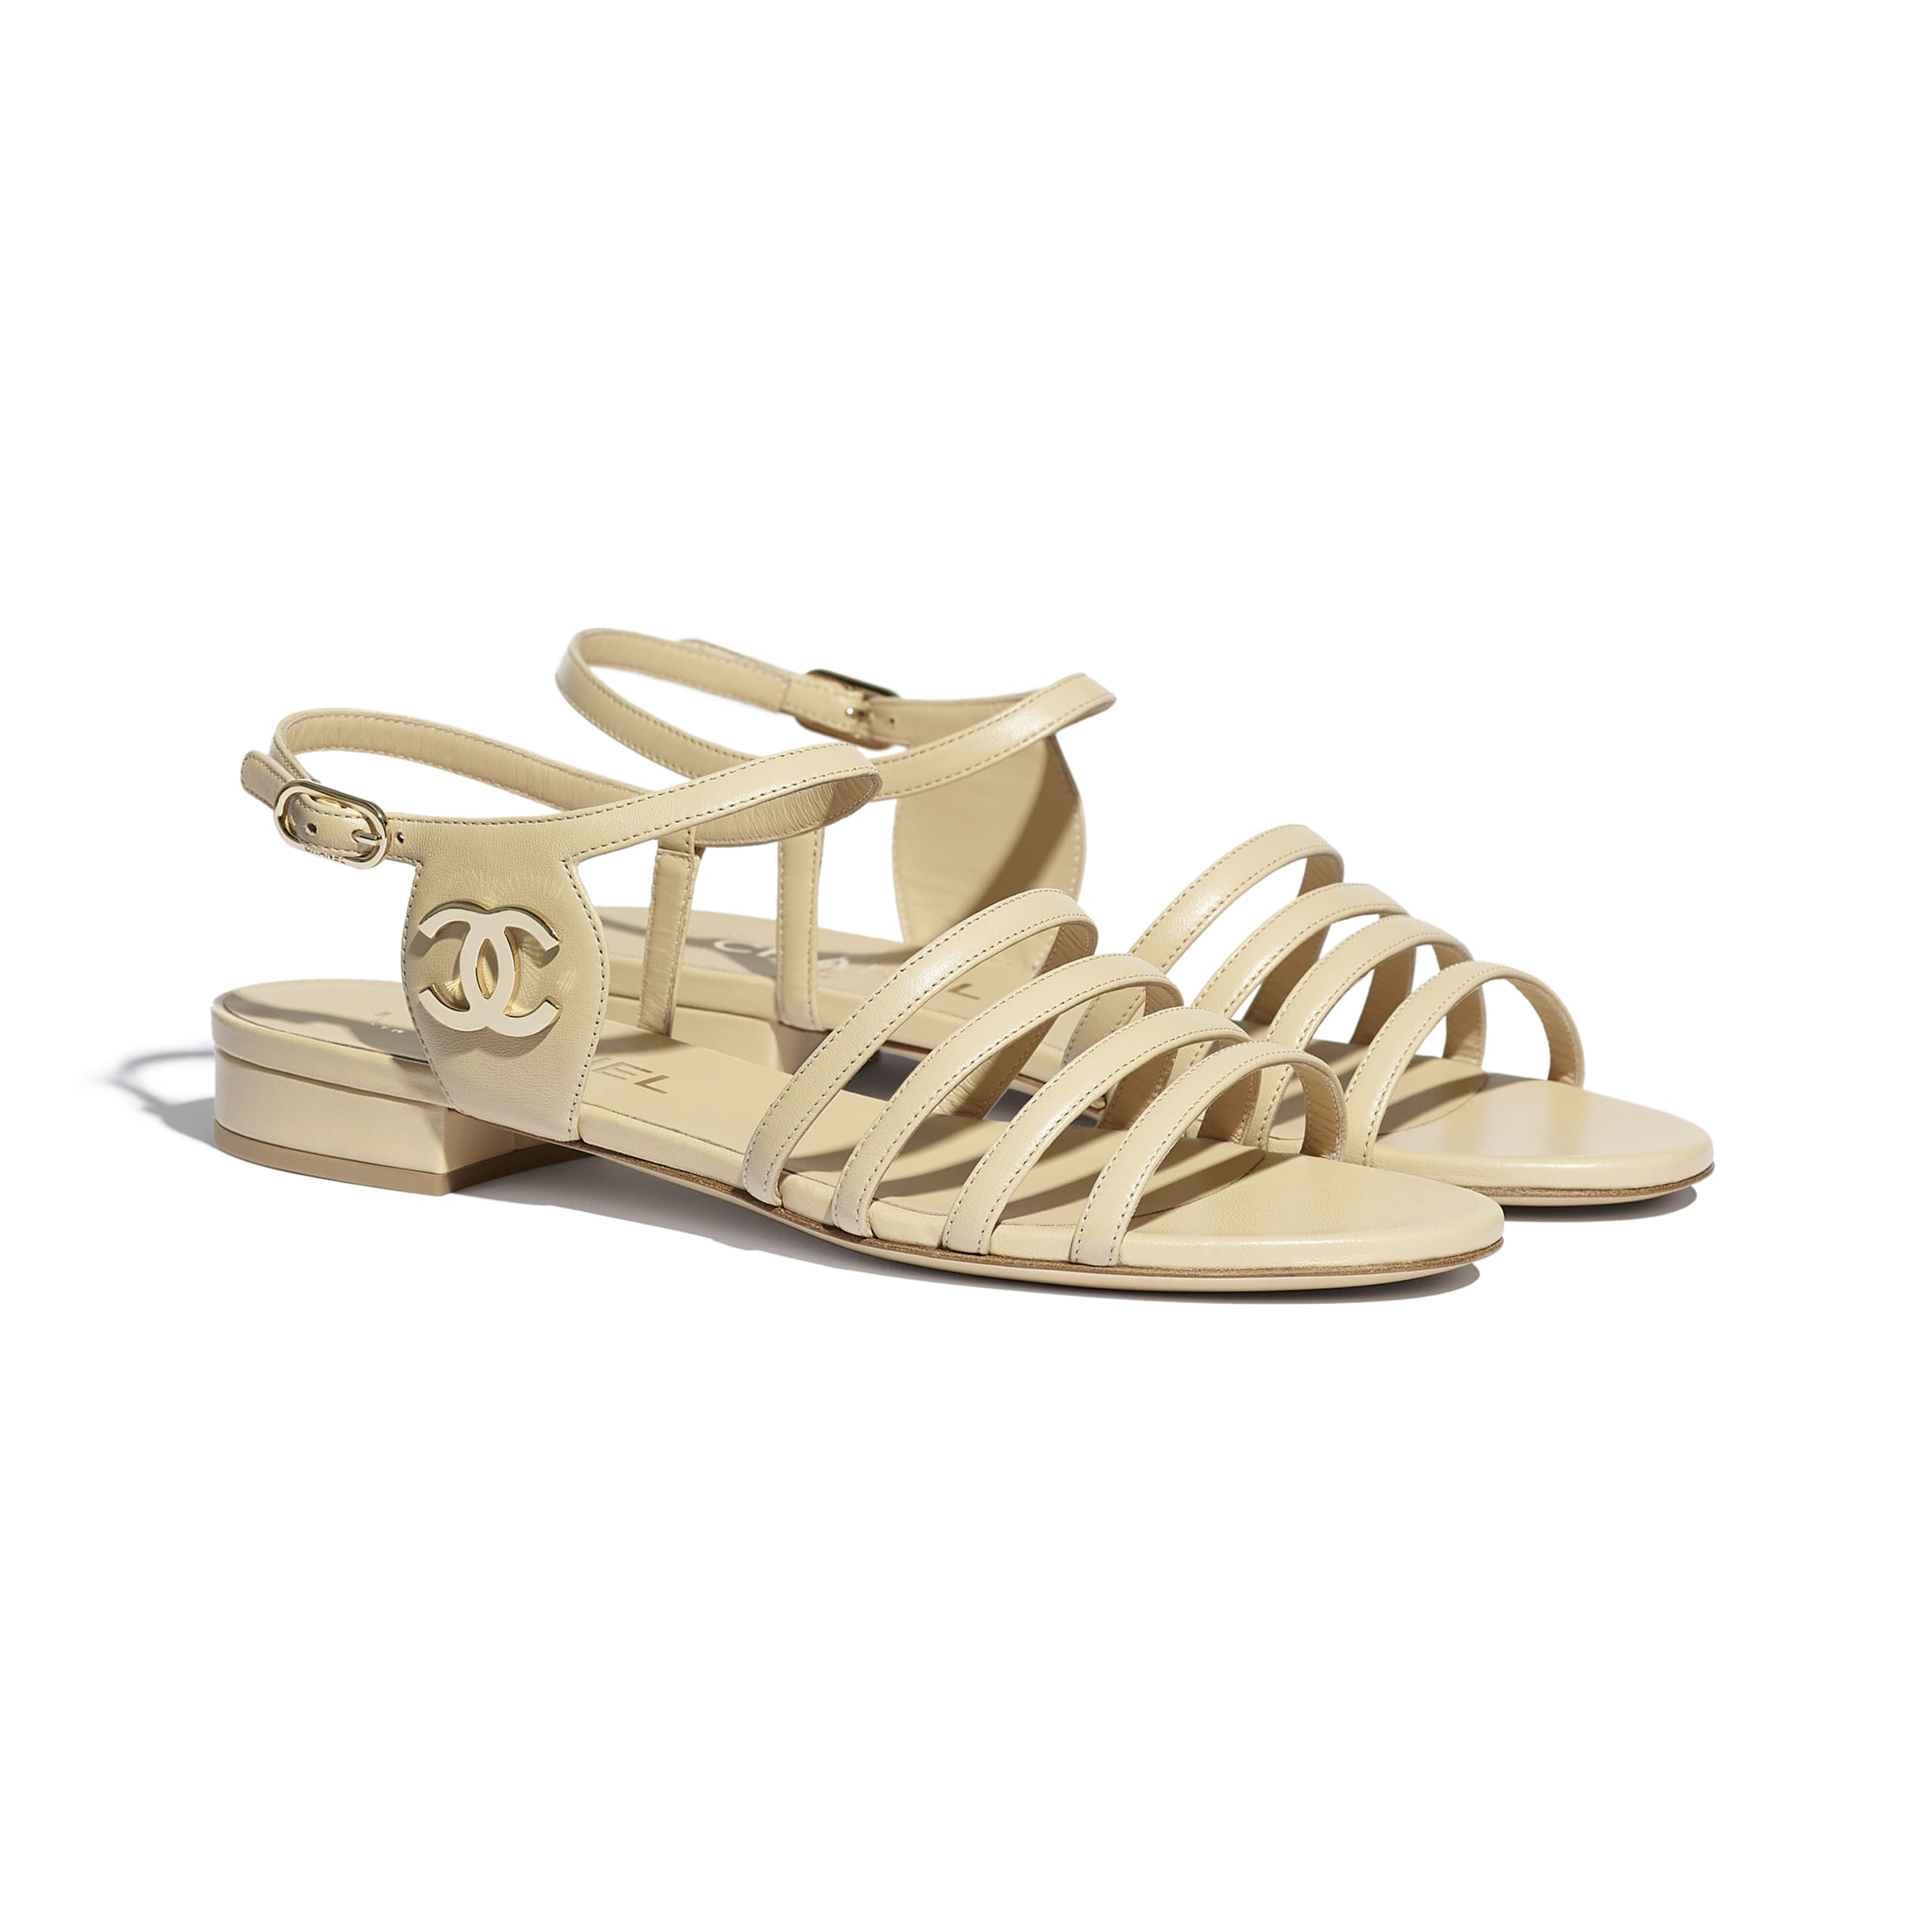 Sandals - Beige - Lambskin - CHANEL - Alternative view - see standard sized version